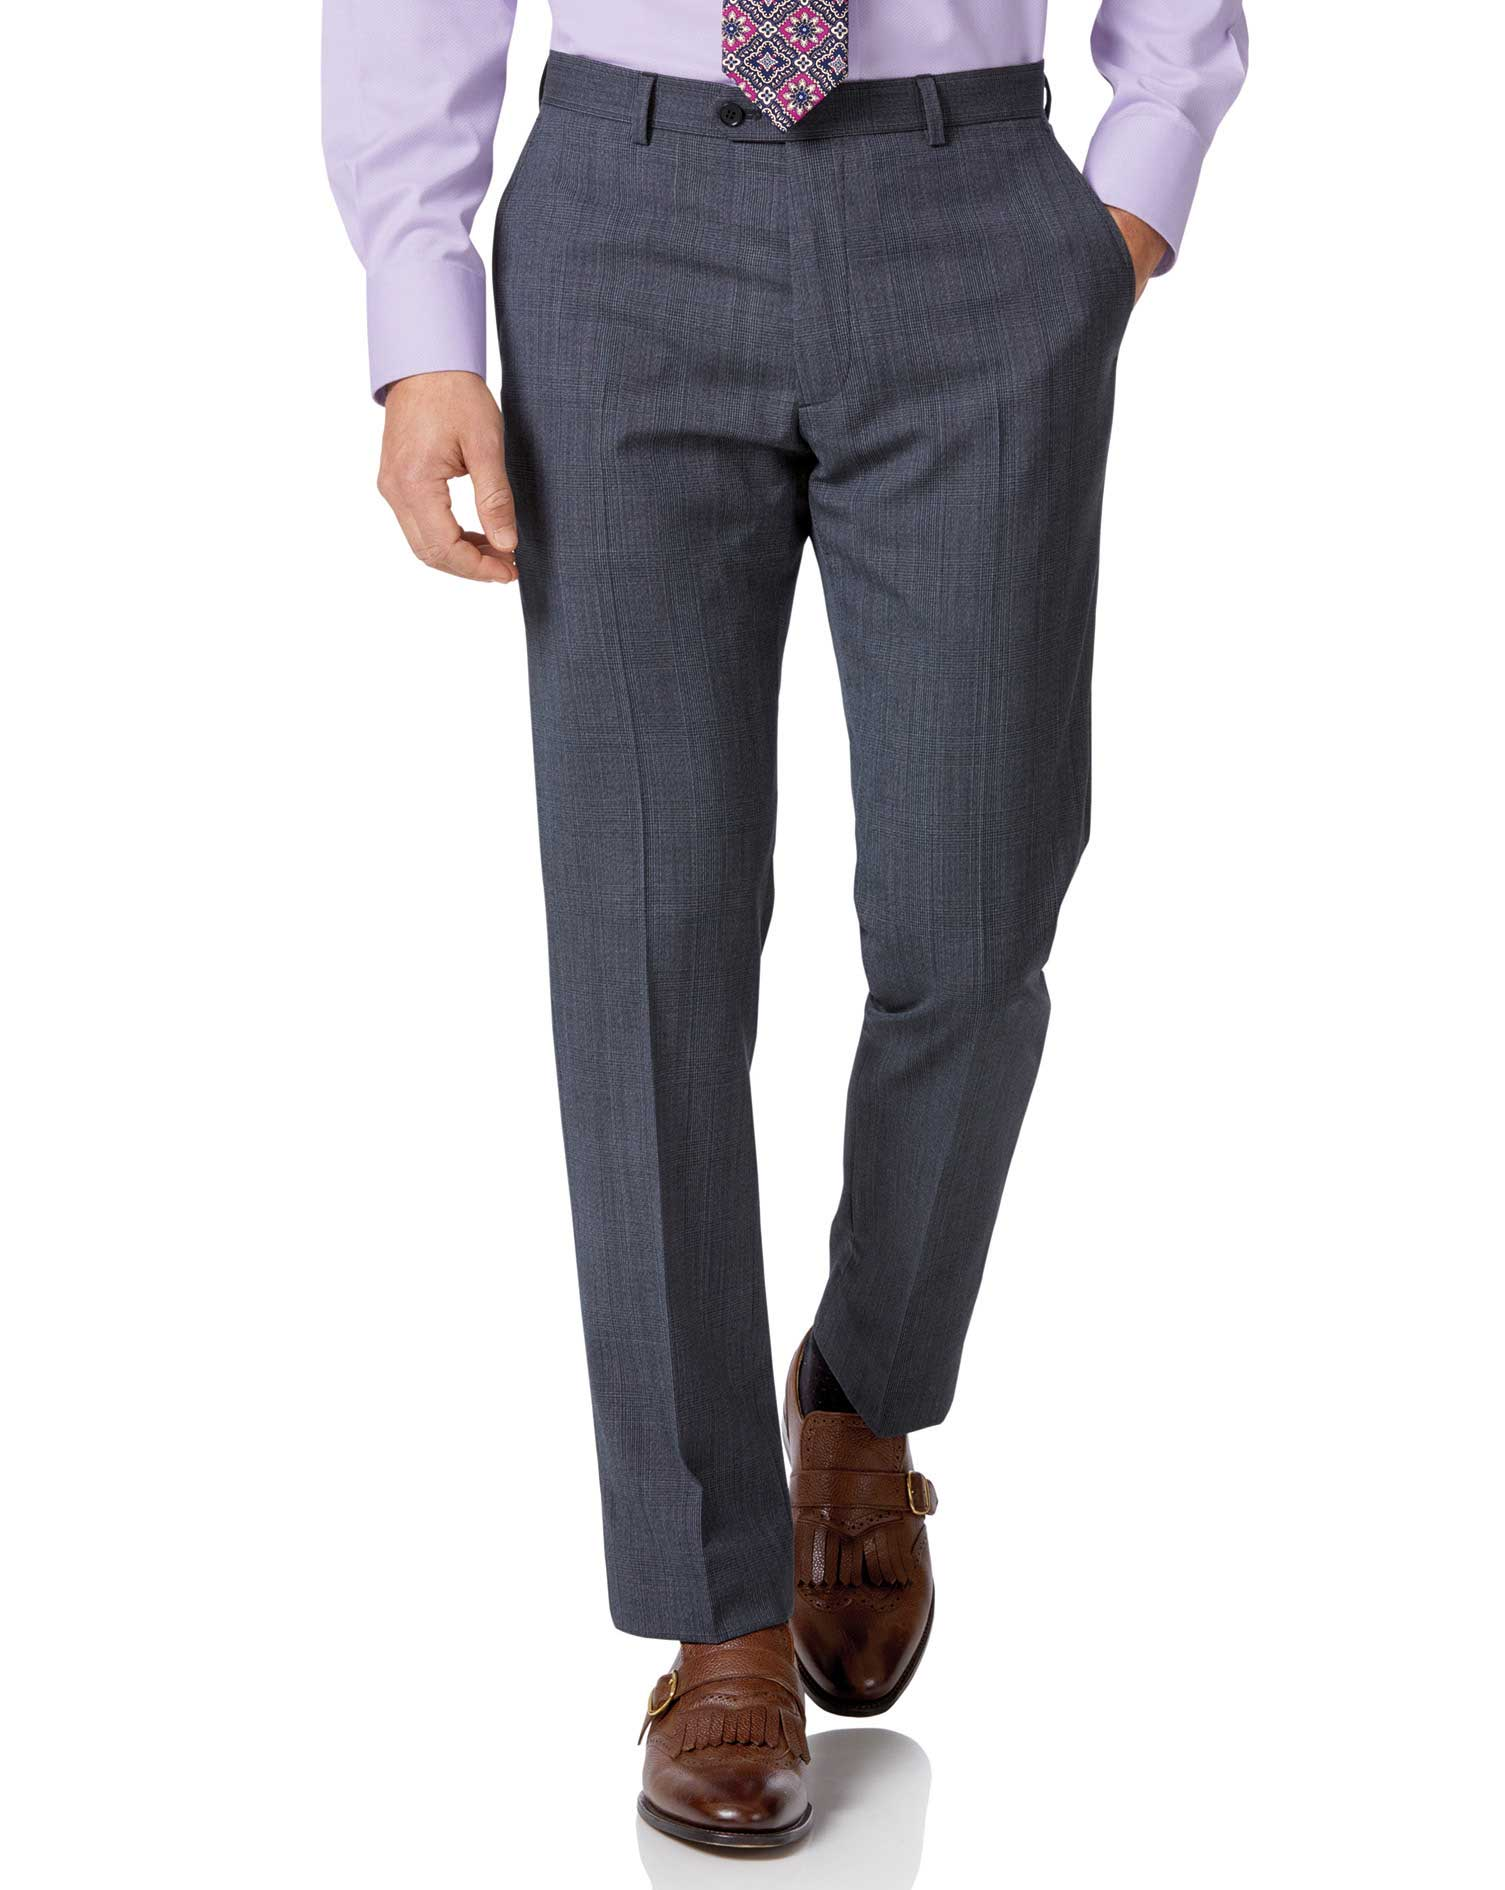 Airforce Blue Check Slim Fit Twist Business Suit Trouser Size W34 L34 by Charles Tyrwhitt